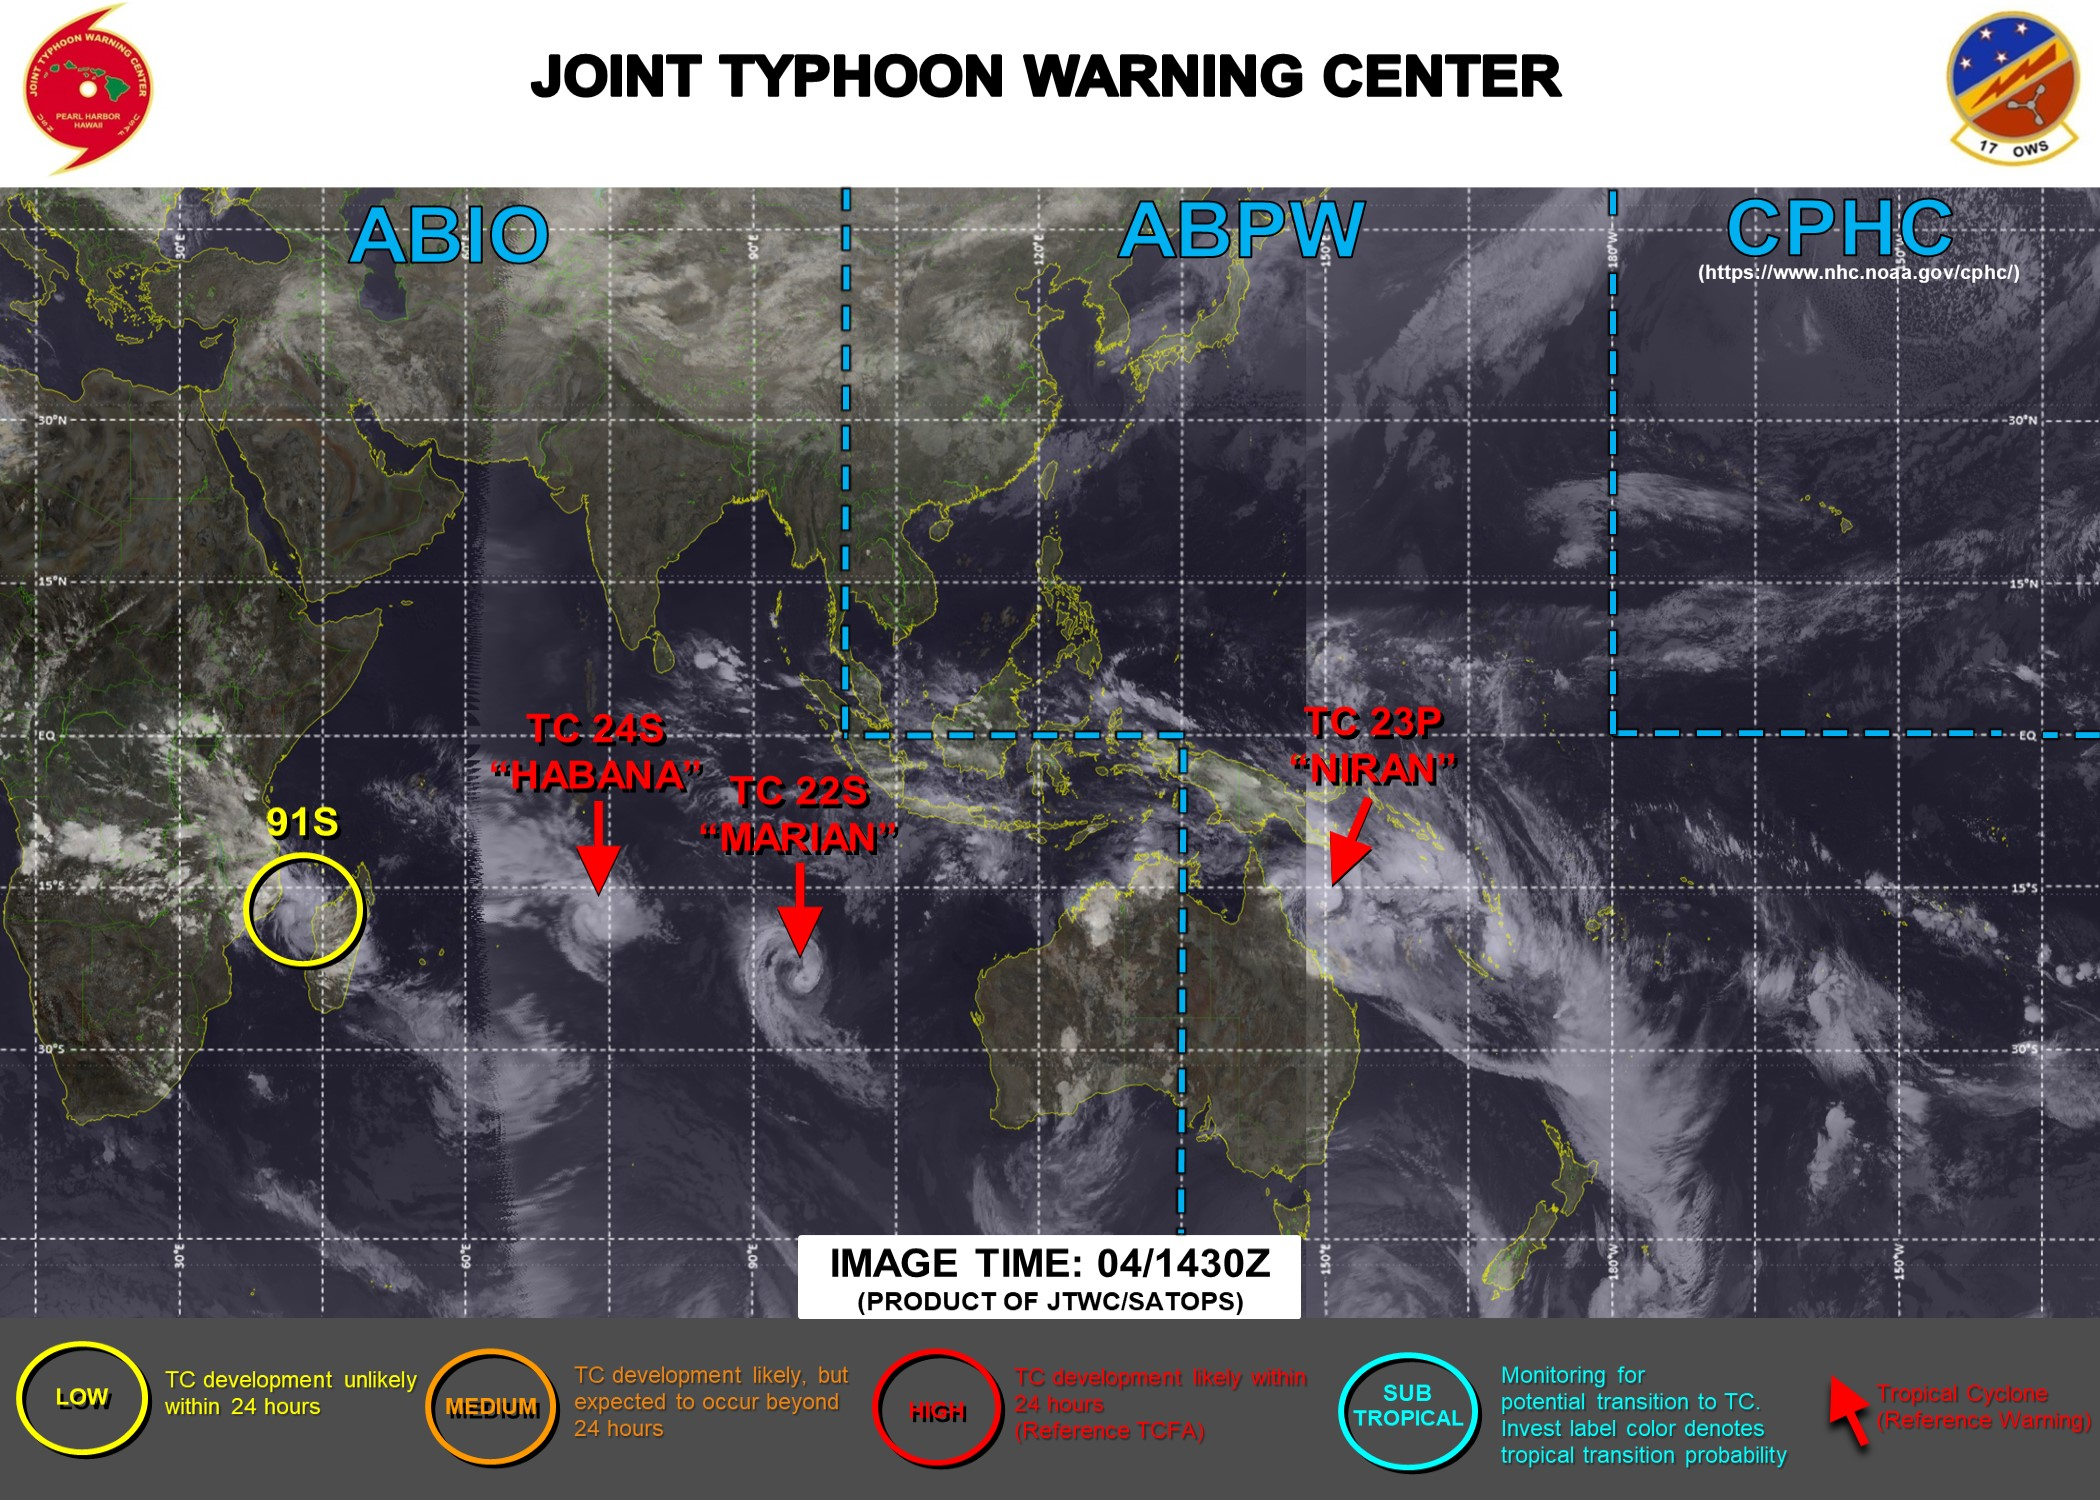 04/15UTC. THE JTWC IS ISSUING 6HOURLY WARNINGS ON 23P(NIRAN) AND 12HOURLY WARNINGS ON 22S(MARIAN) AND 24S(HABANA). 3 HOURLY SATELLITE BULLETINS ARE ISSUED FOR THE 3 SYSTEMS. INVEST 91S IS NOW ON THE MAP ASSESSED AS CURRENTLY HAVING LOW CHANCES OF REACHING 35KNOTS WITHIN THE NEXT 24HOURS.